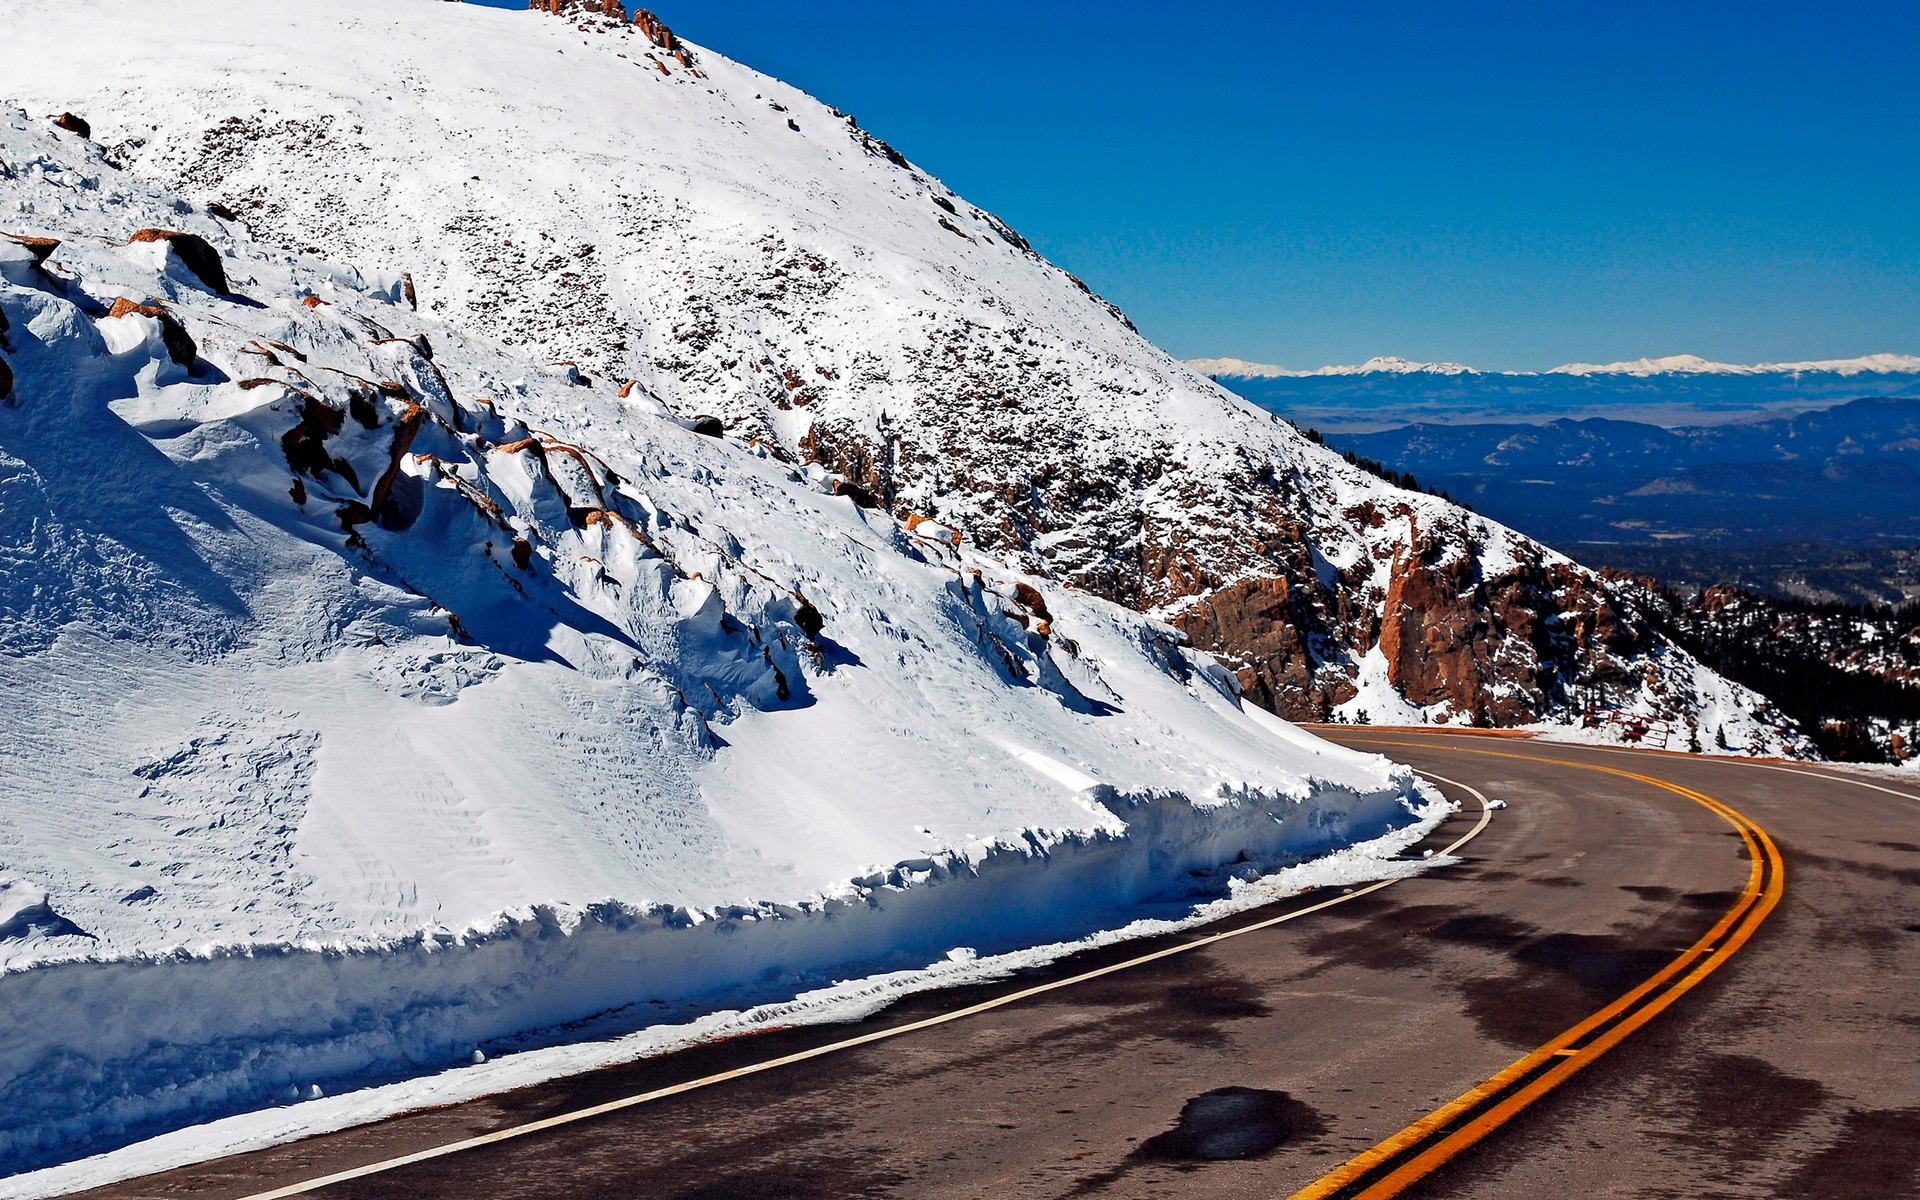 The road in the snowy mountains